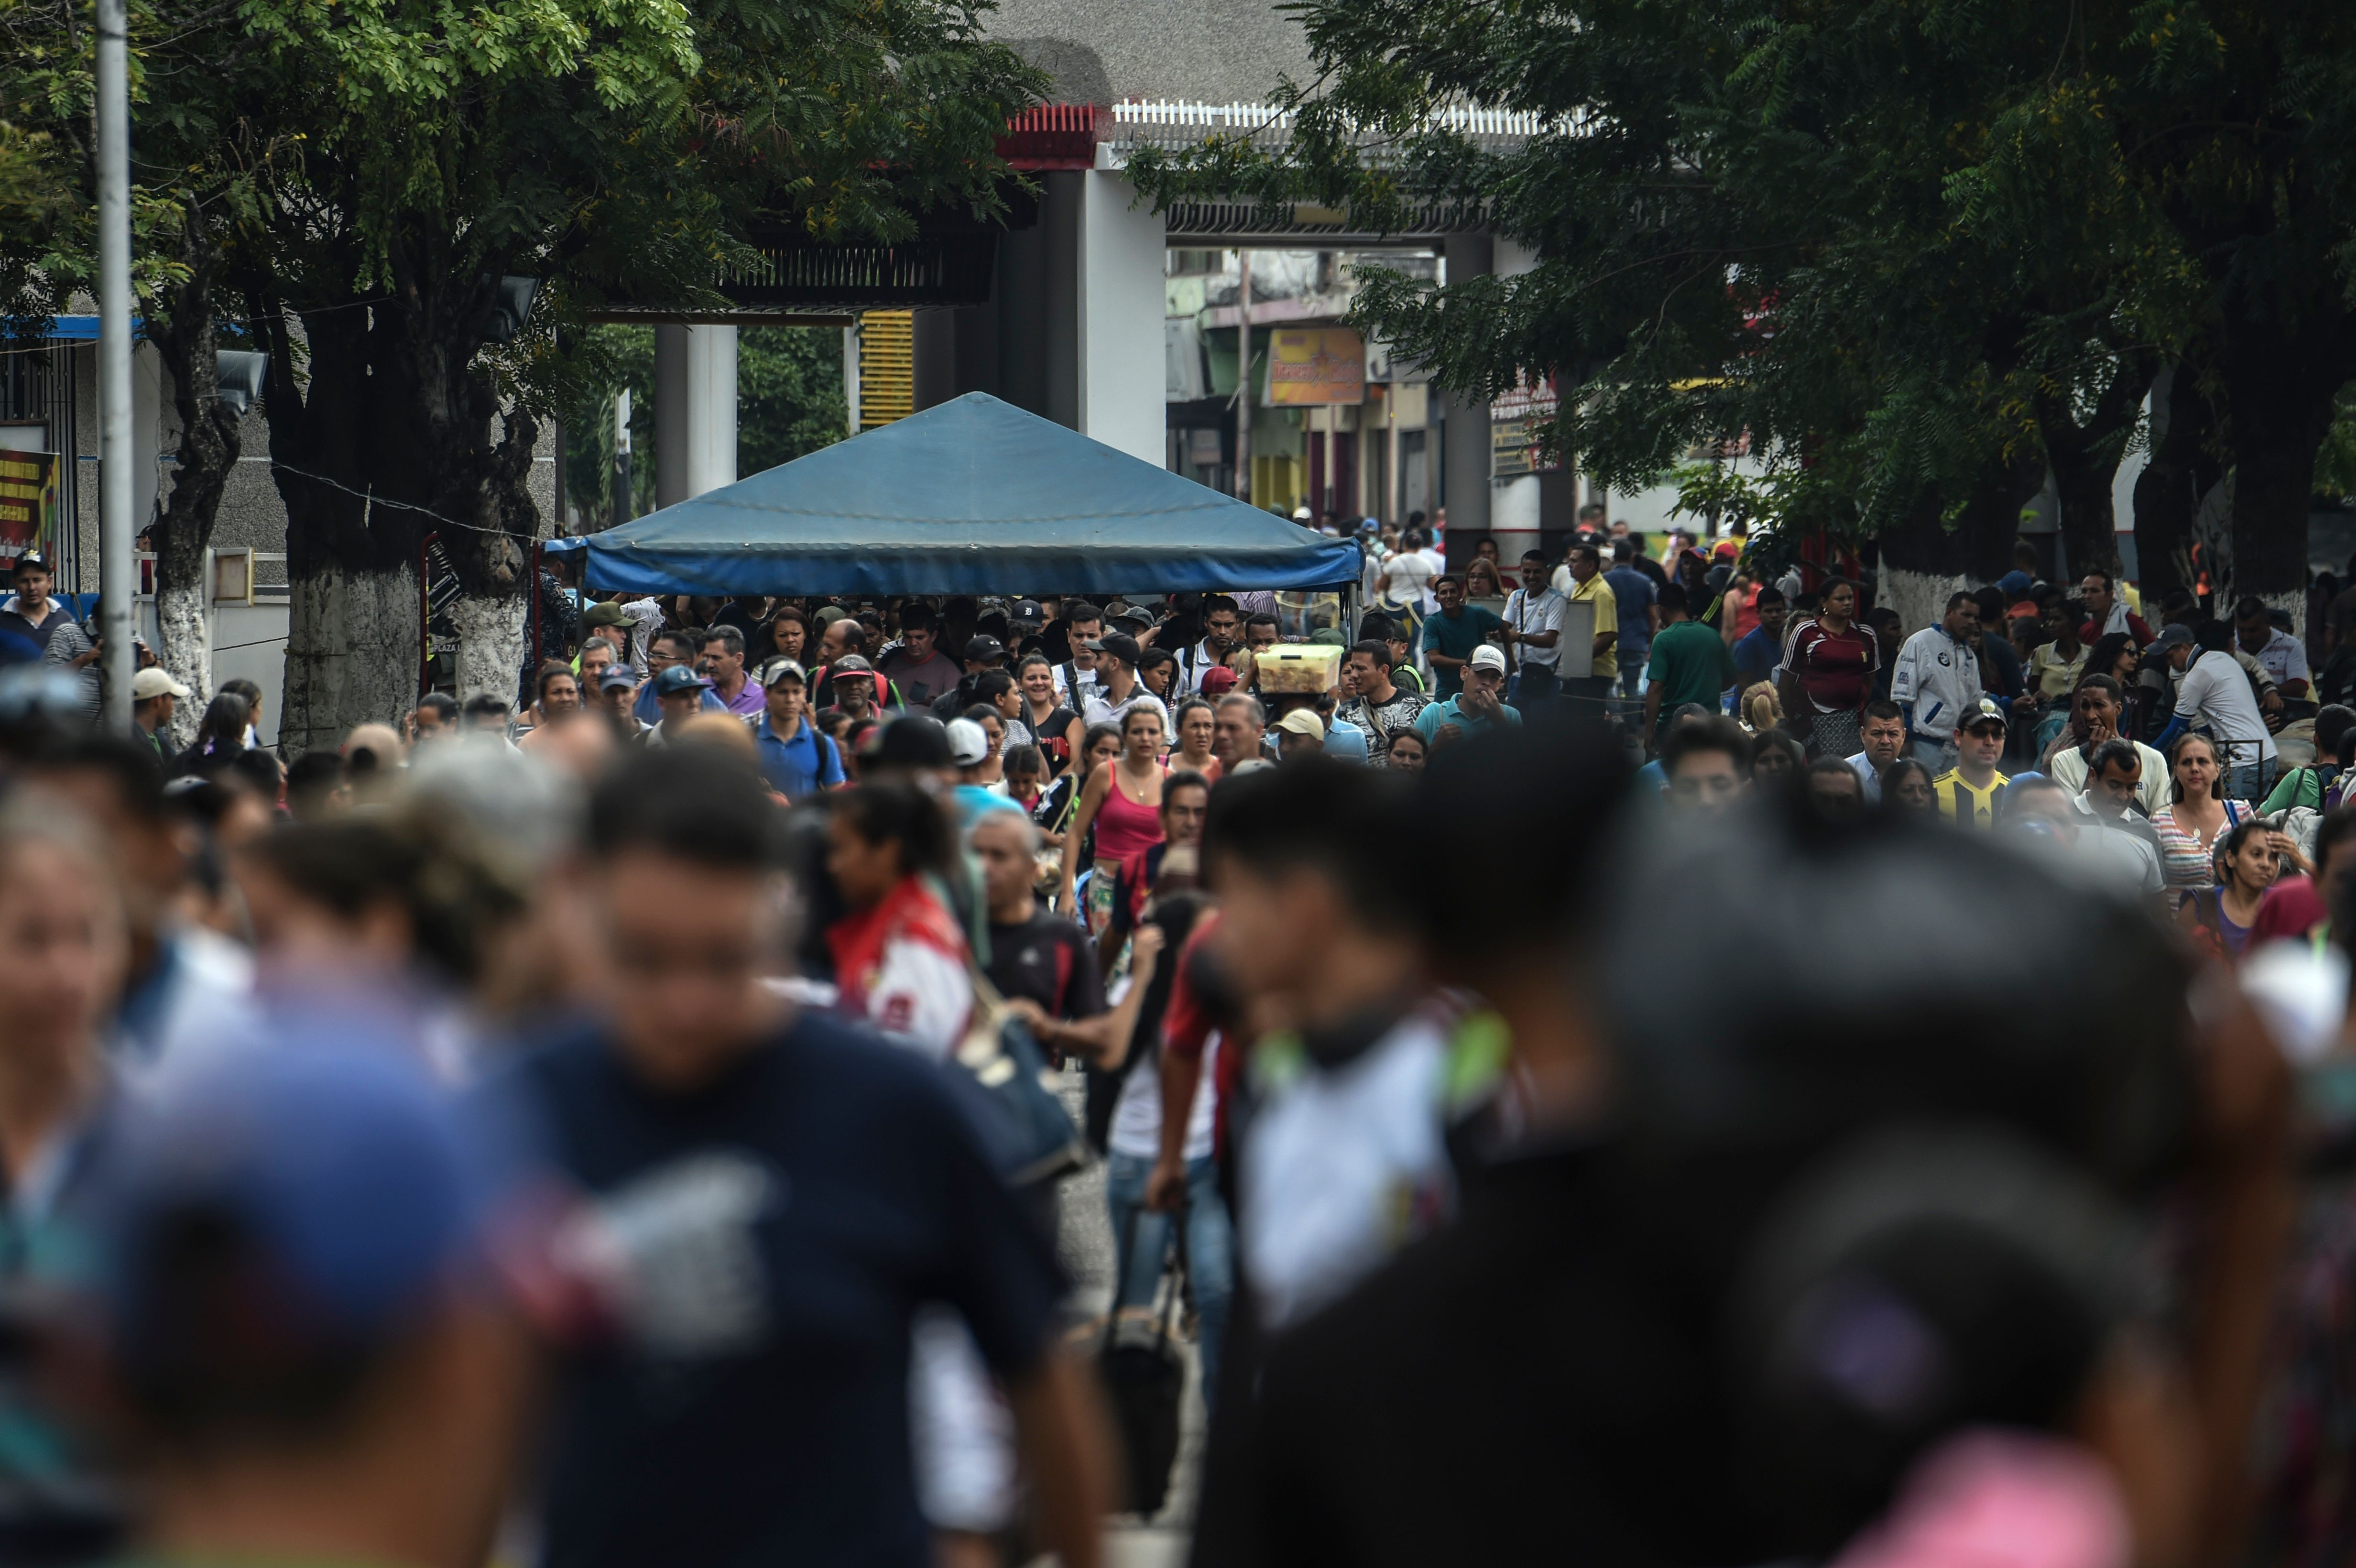 """Venezuelans cross the Simon Bolivar brige in San Antonio del Tachira, Tachira State, Venezuela, on the border with Colombia, on February 20, 2019. - Nicolas Maduro's government suspended """"indefinite flights"""" and set sail for Curaçao, Aruba and Bonaire, and announced the revision of relations with the three Caribbean islands in their offensive to prevent the entry of humanitarian aid to Venezuela on Saturday. (Photo by Juan BARRETO / AFP)"""